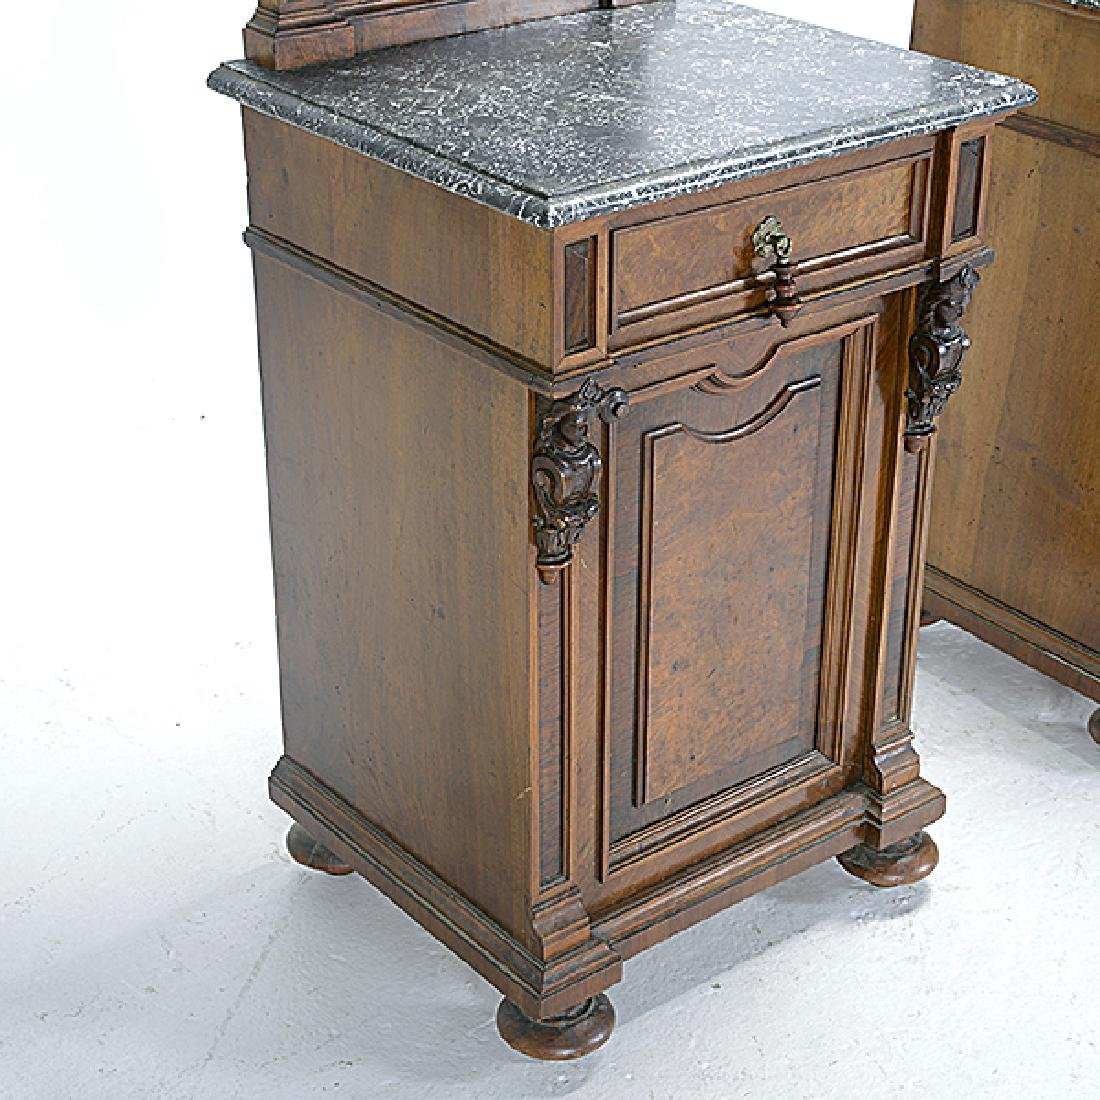 Pair of Rococo Revival Bedside Tables with Commode - 4